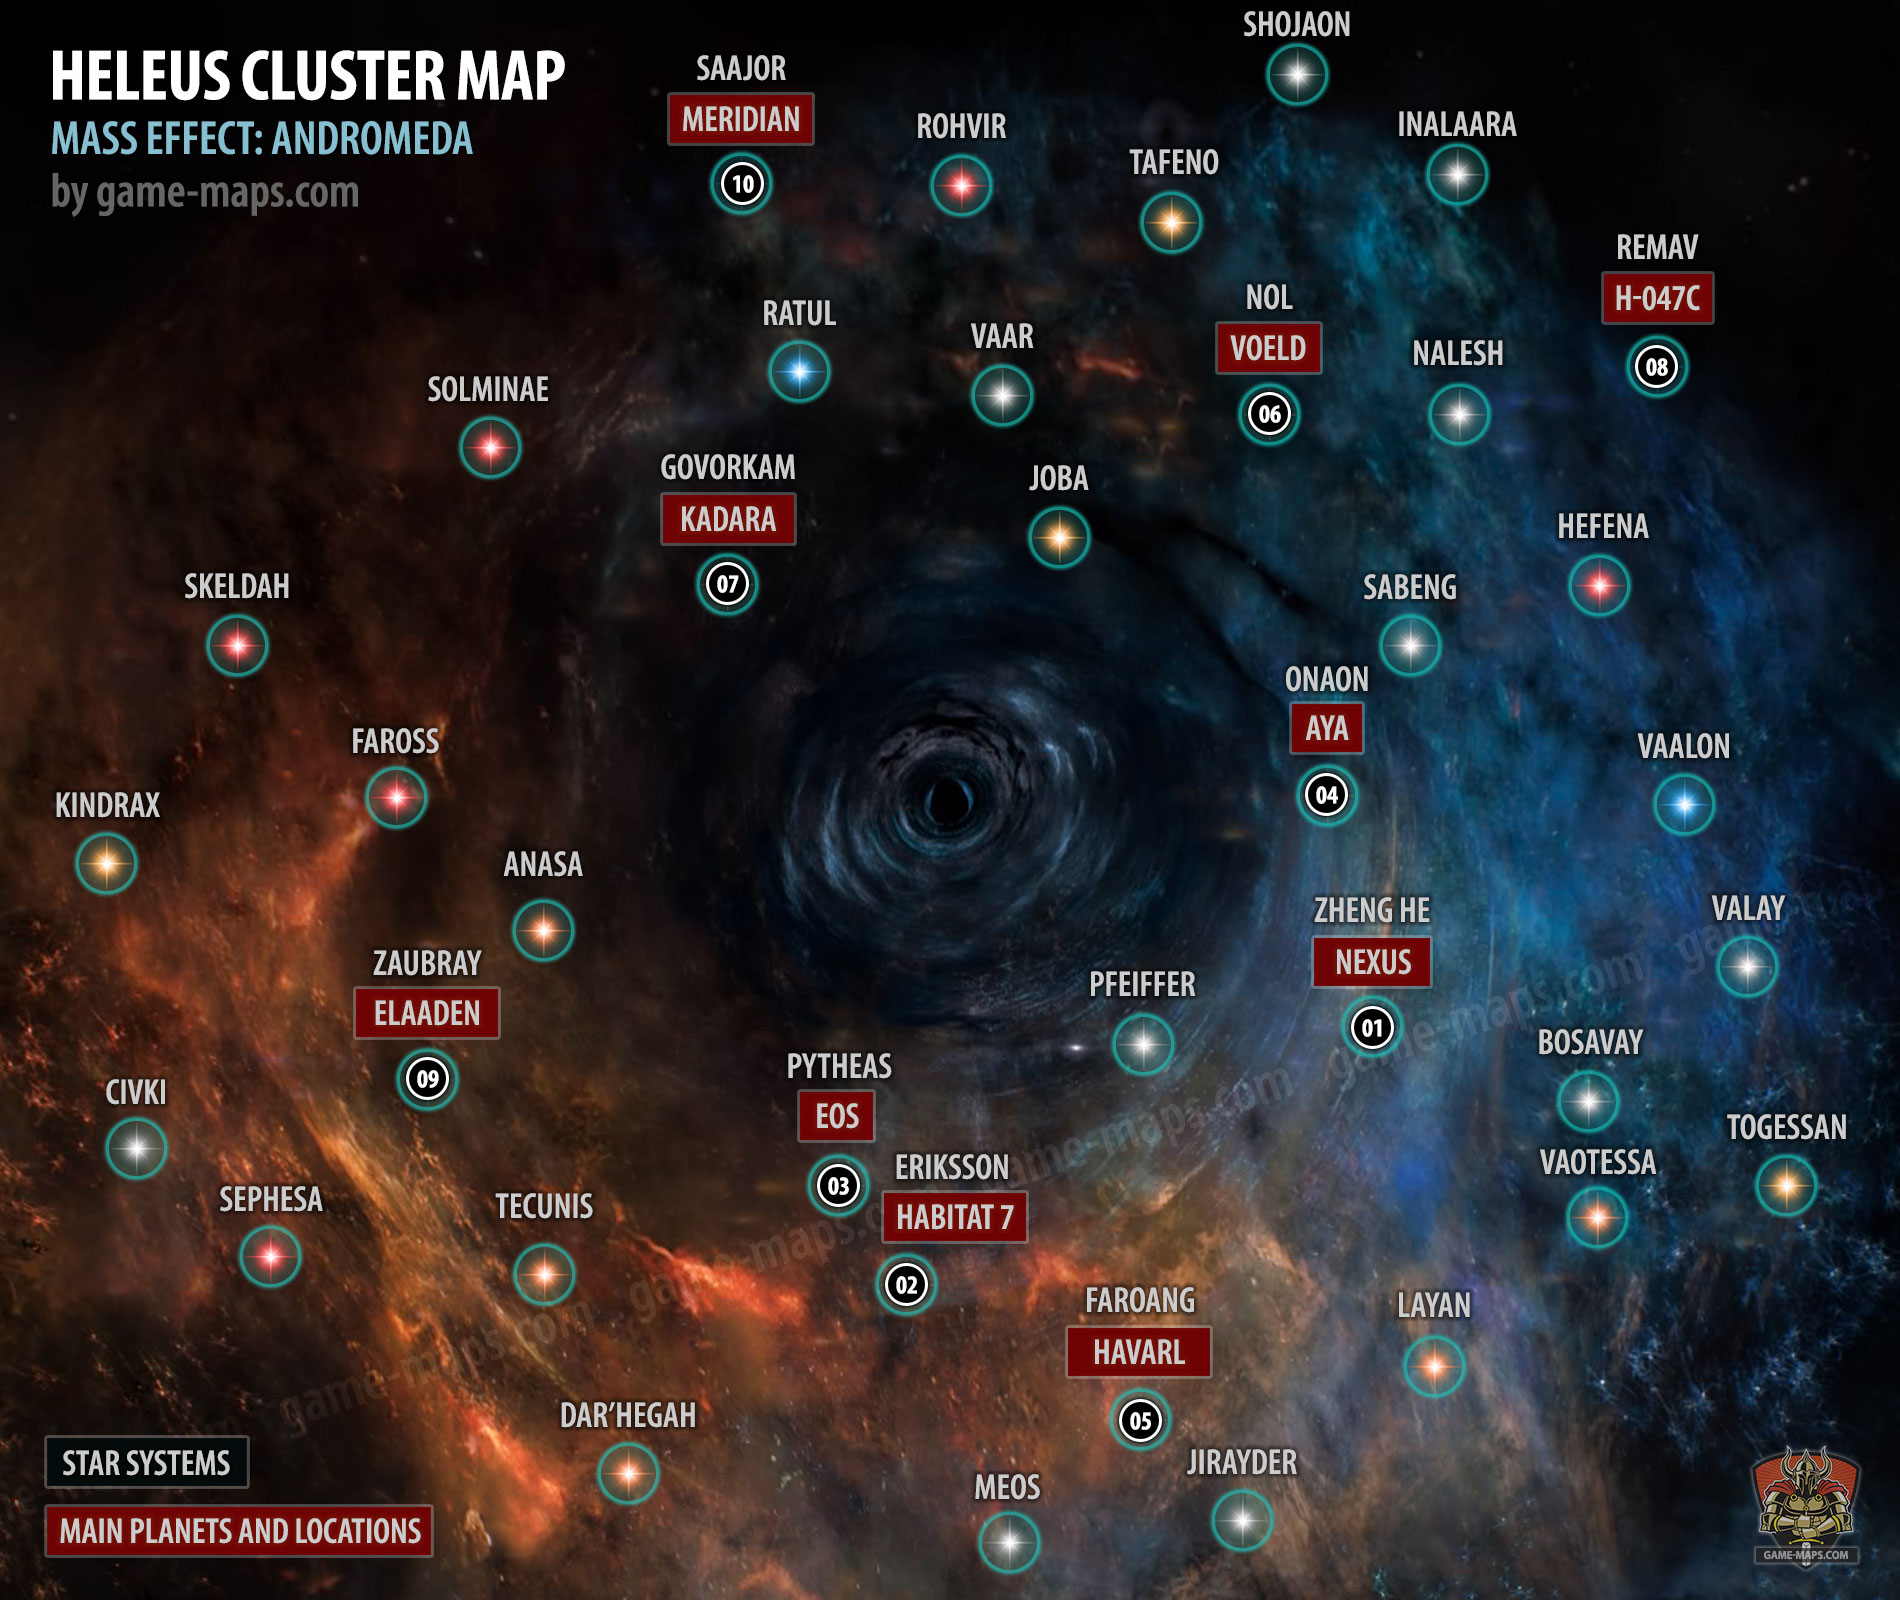 Mass Effect Andromeda Star Map.Heleus Cluster Map Mass Effect Andromeda Game Maps Com